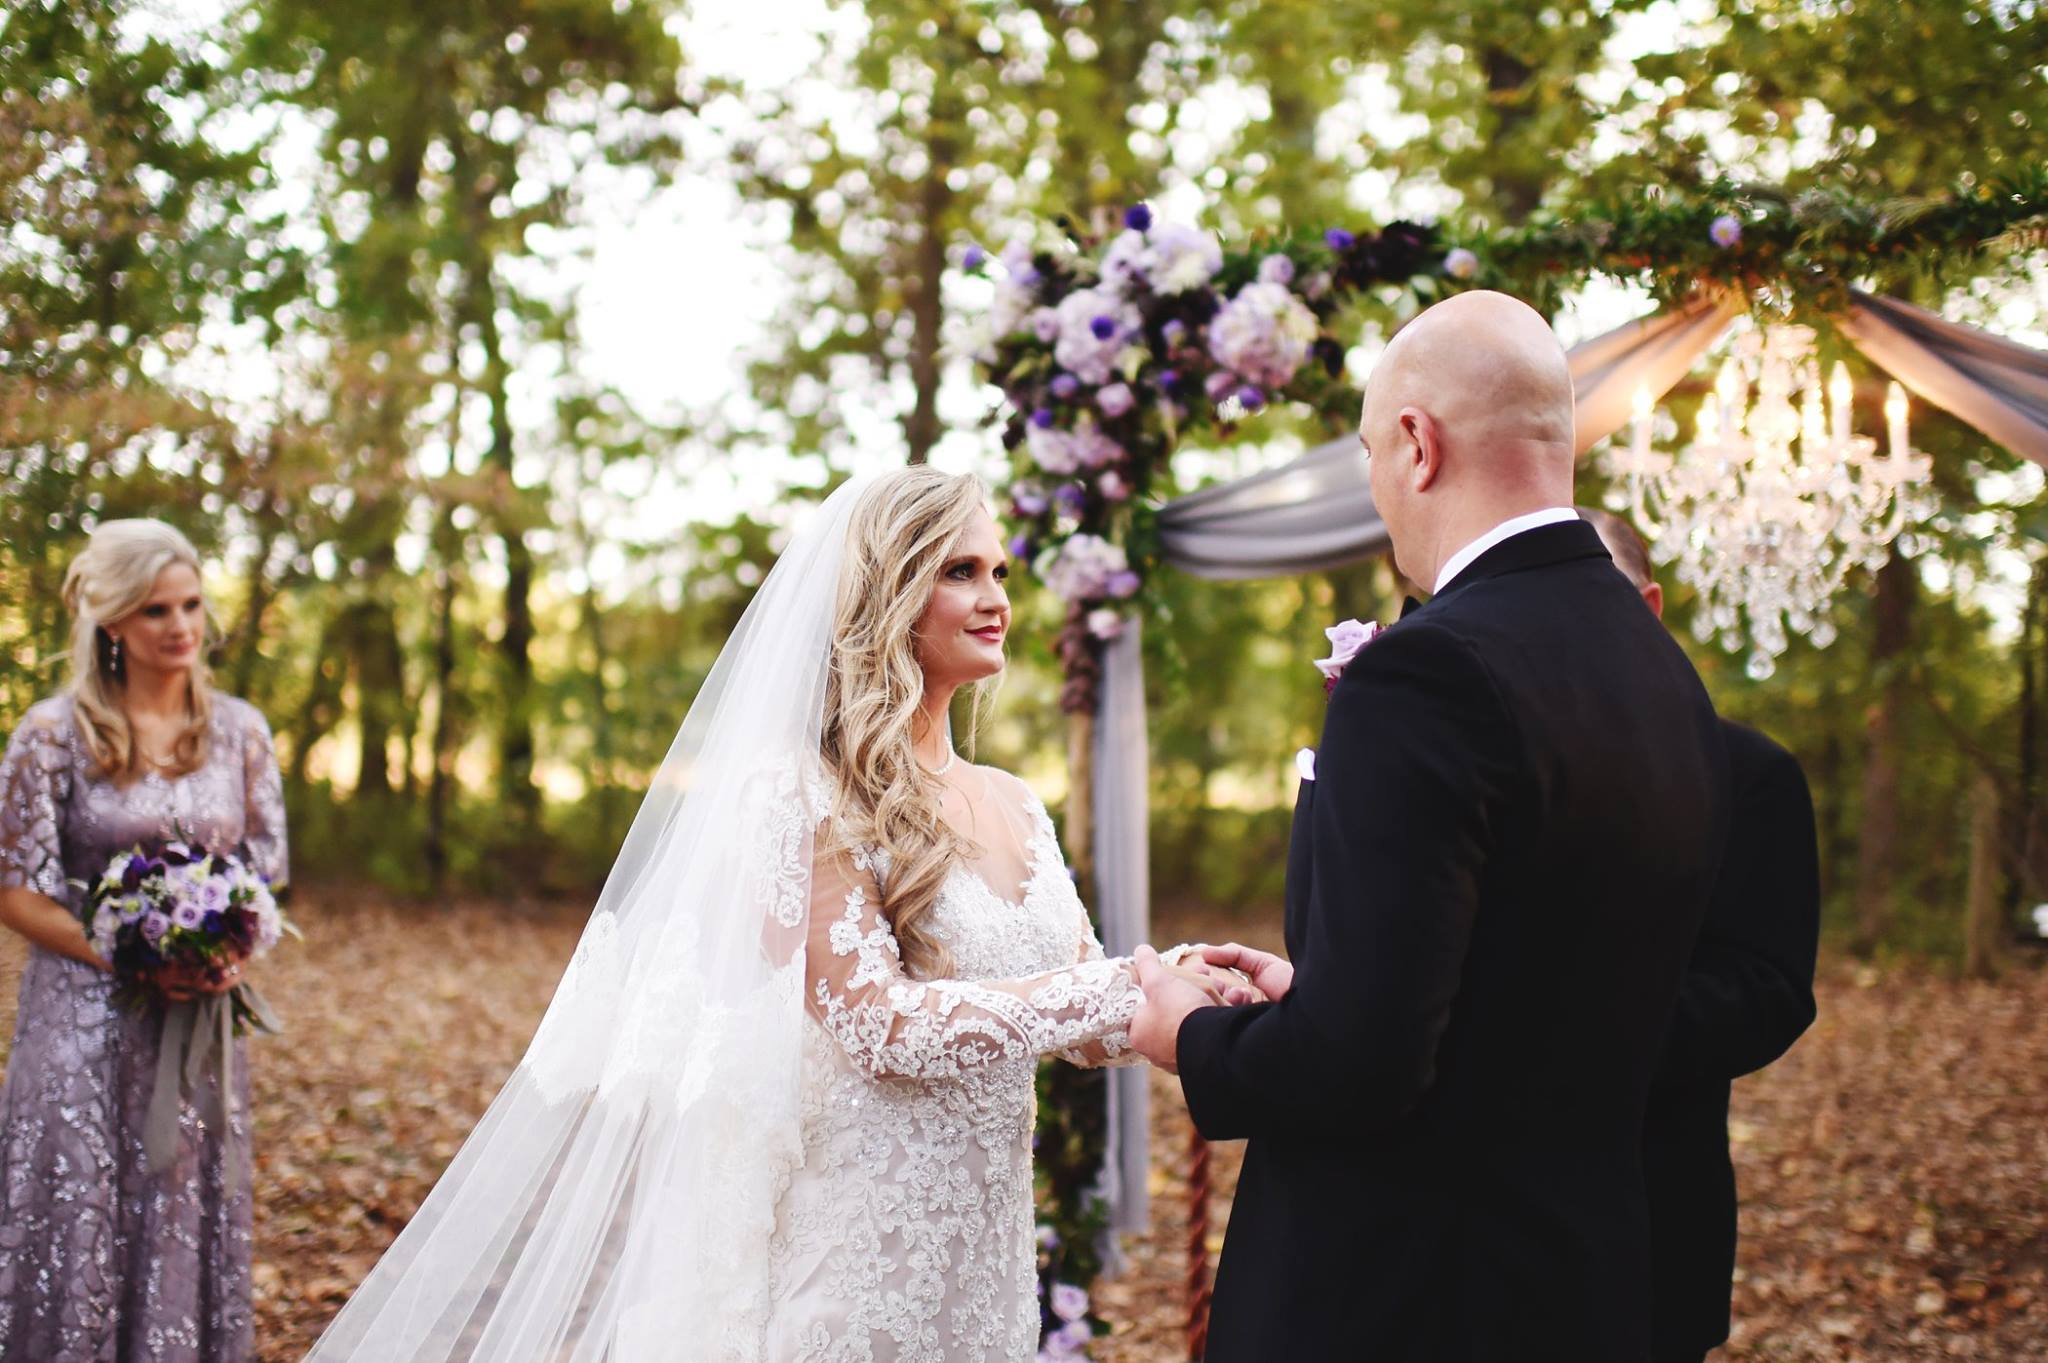 Stephanie Parsley Photography , from  Meagan + Trevor 's wedding